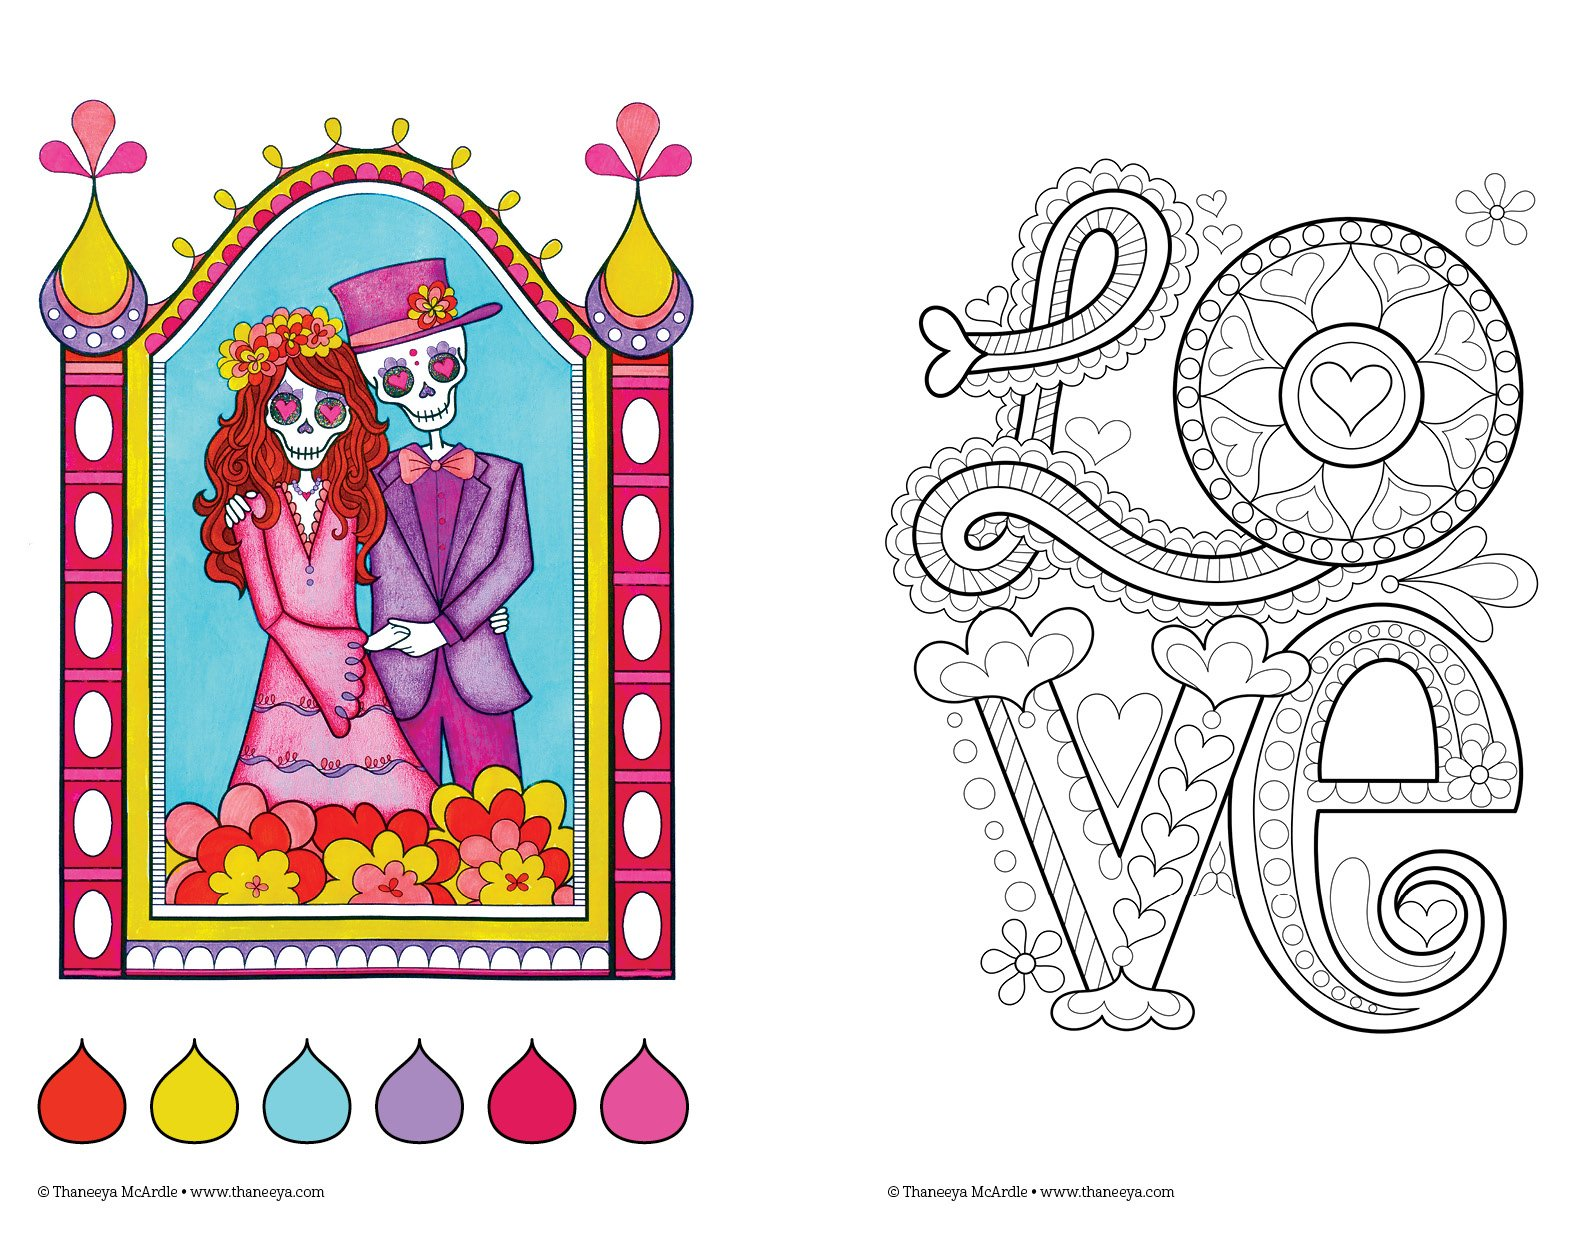 Amazon Color Love Coloring Book Perfectly Portable Pages On The Go Design Originals Hearts Flowers Animal Designs In A